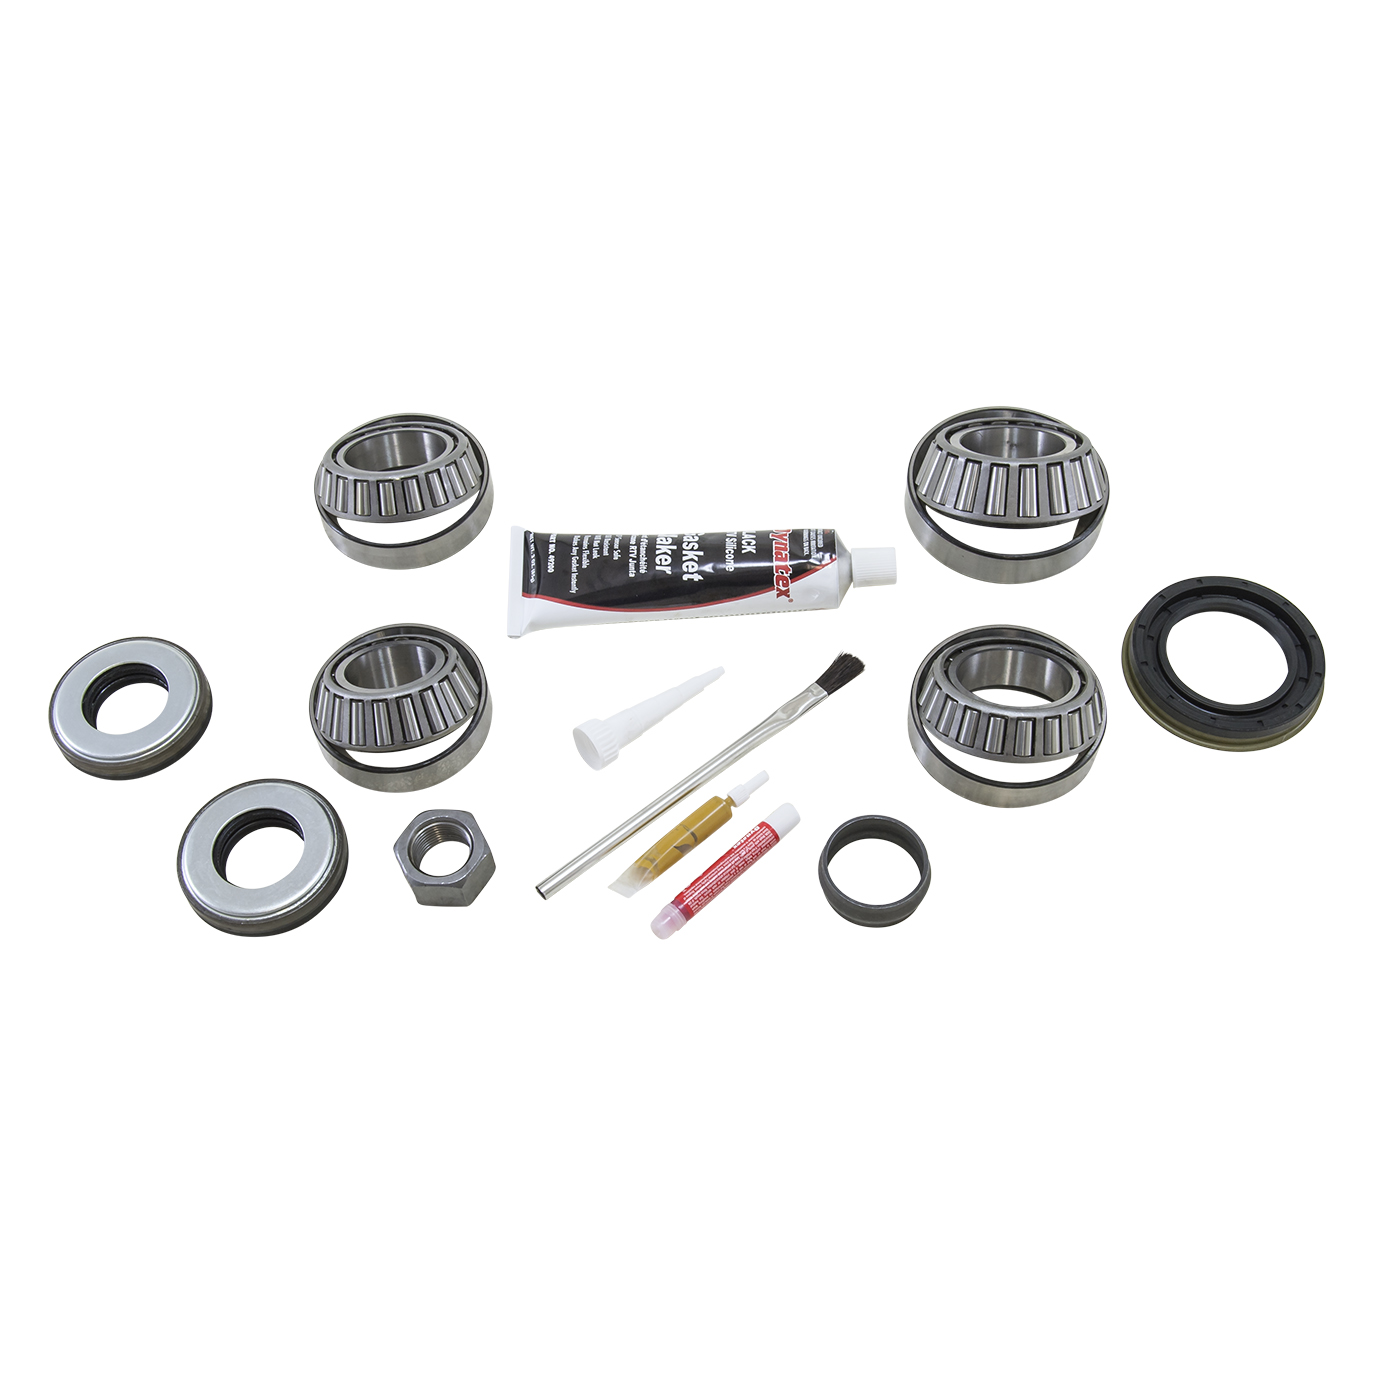 BK GM9.25IFS - Yukon Bearing install kit for '10 & down GM 9.25